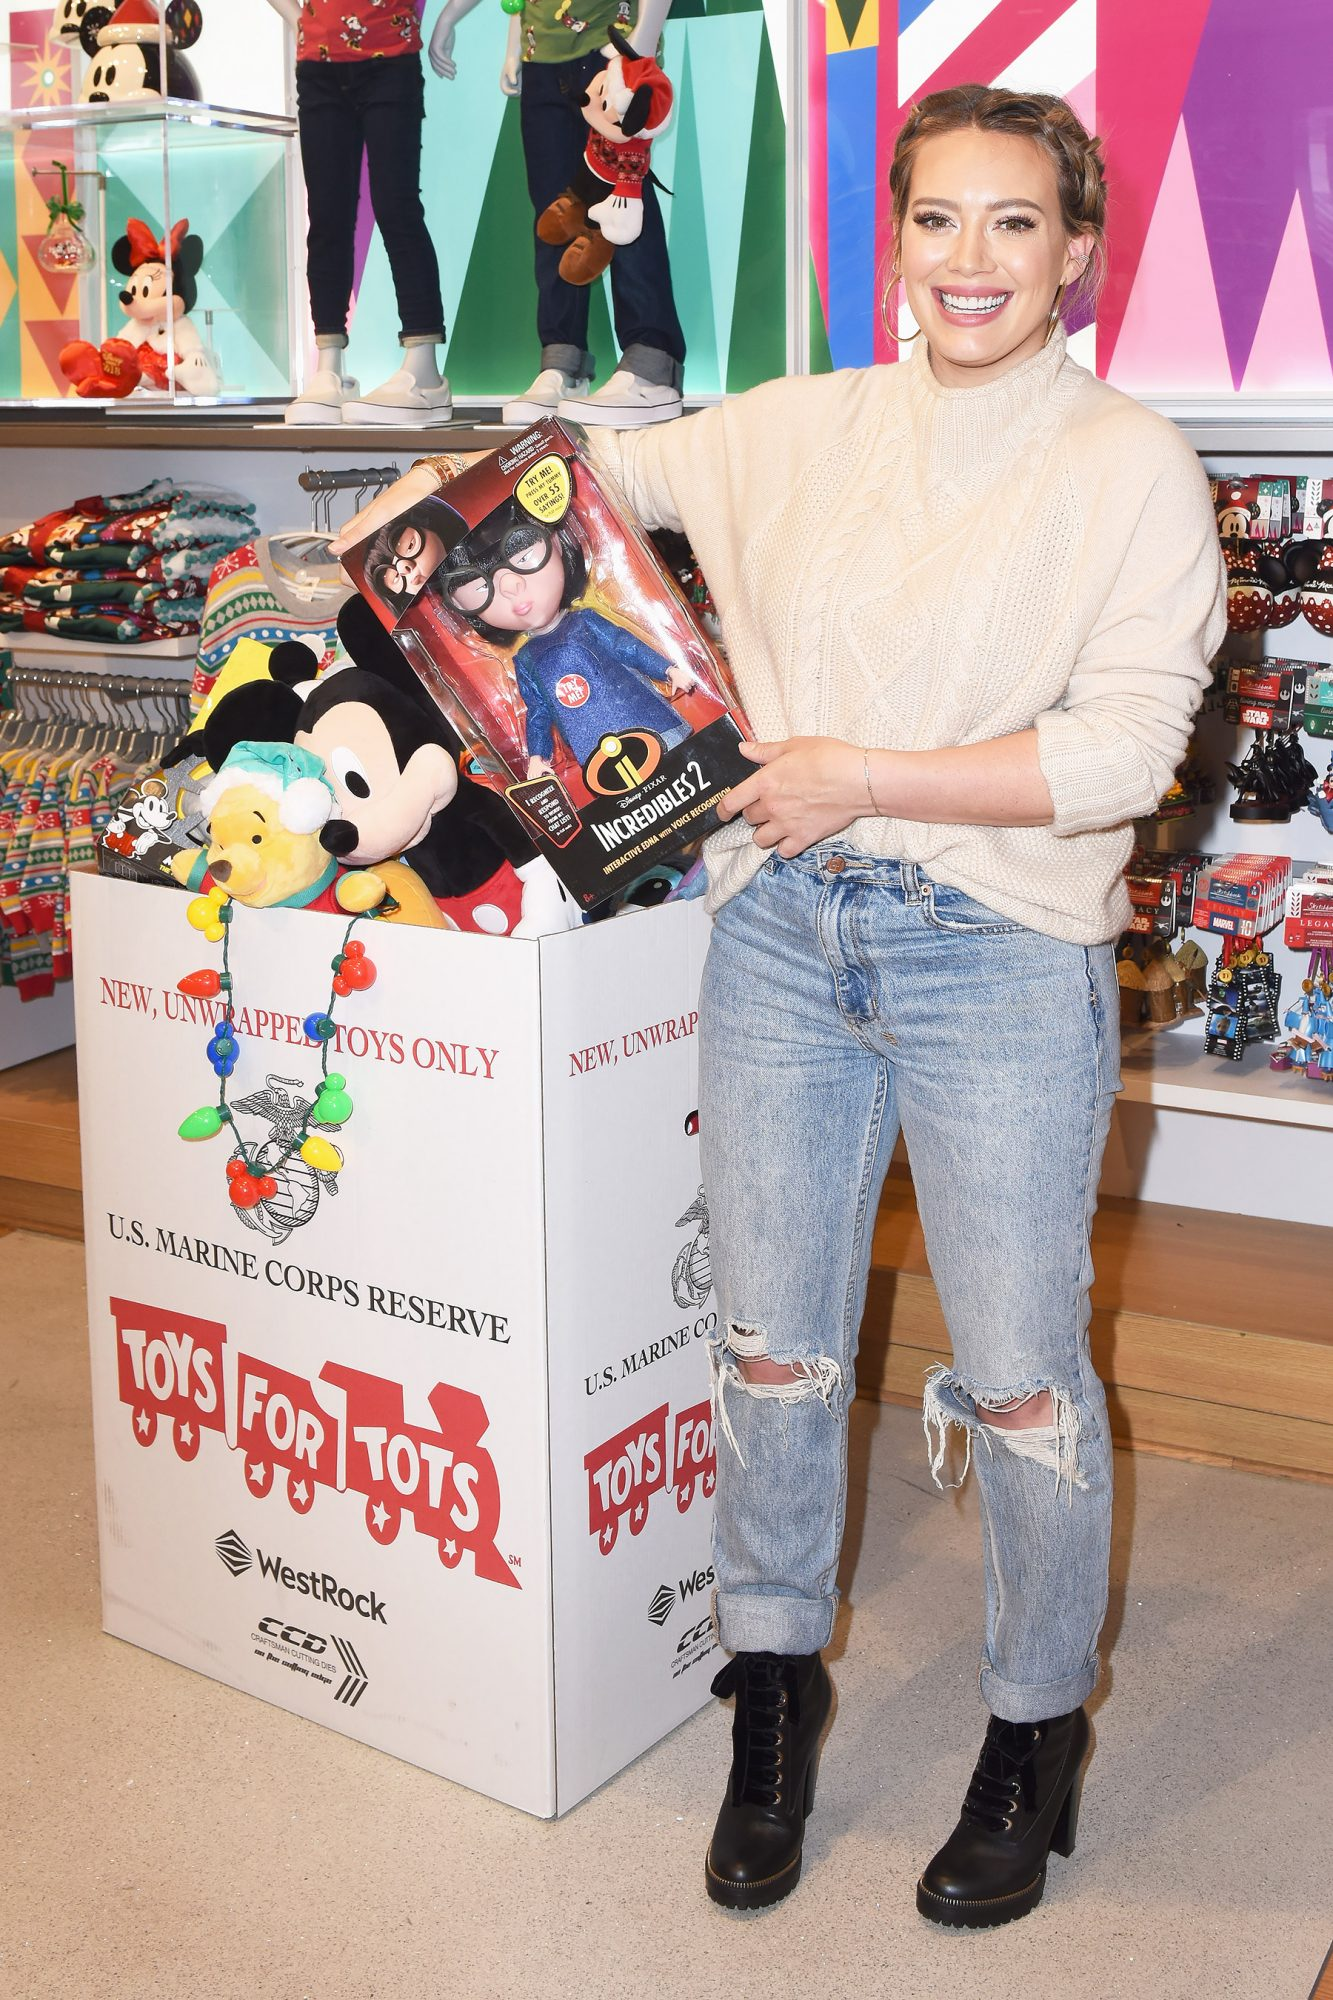 Hilary Duff Kicks off the Disney store and shopDisney's Toys for Tots Holiday Campaign